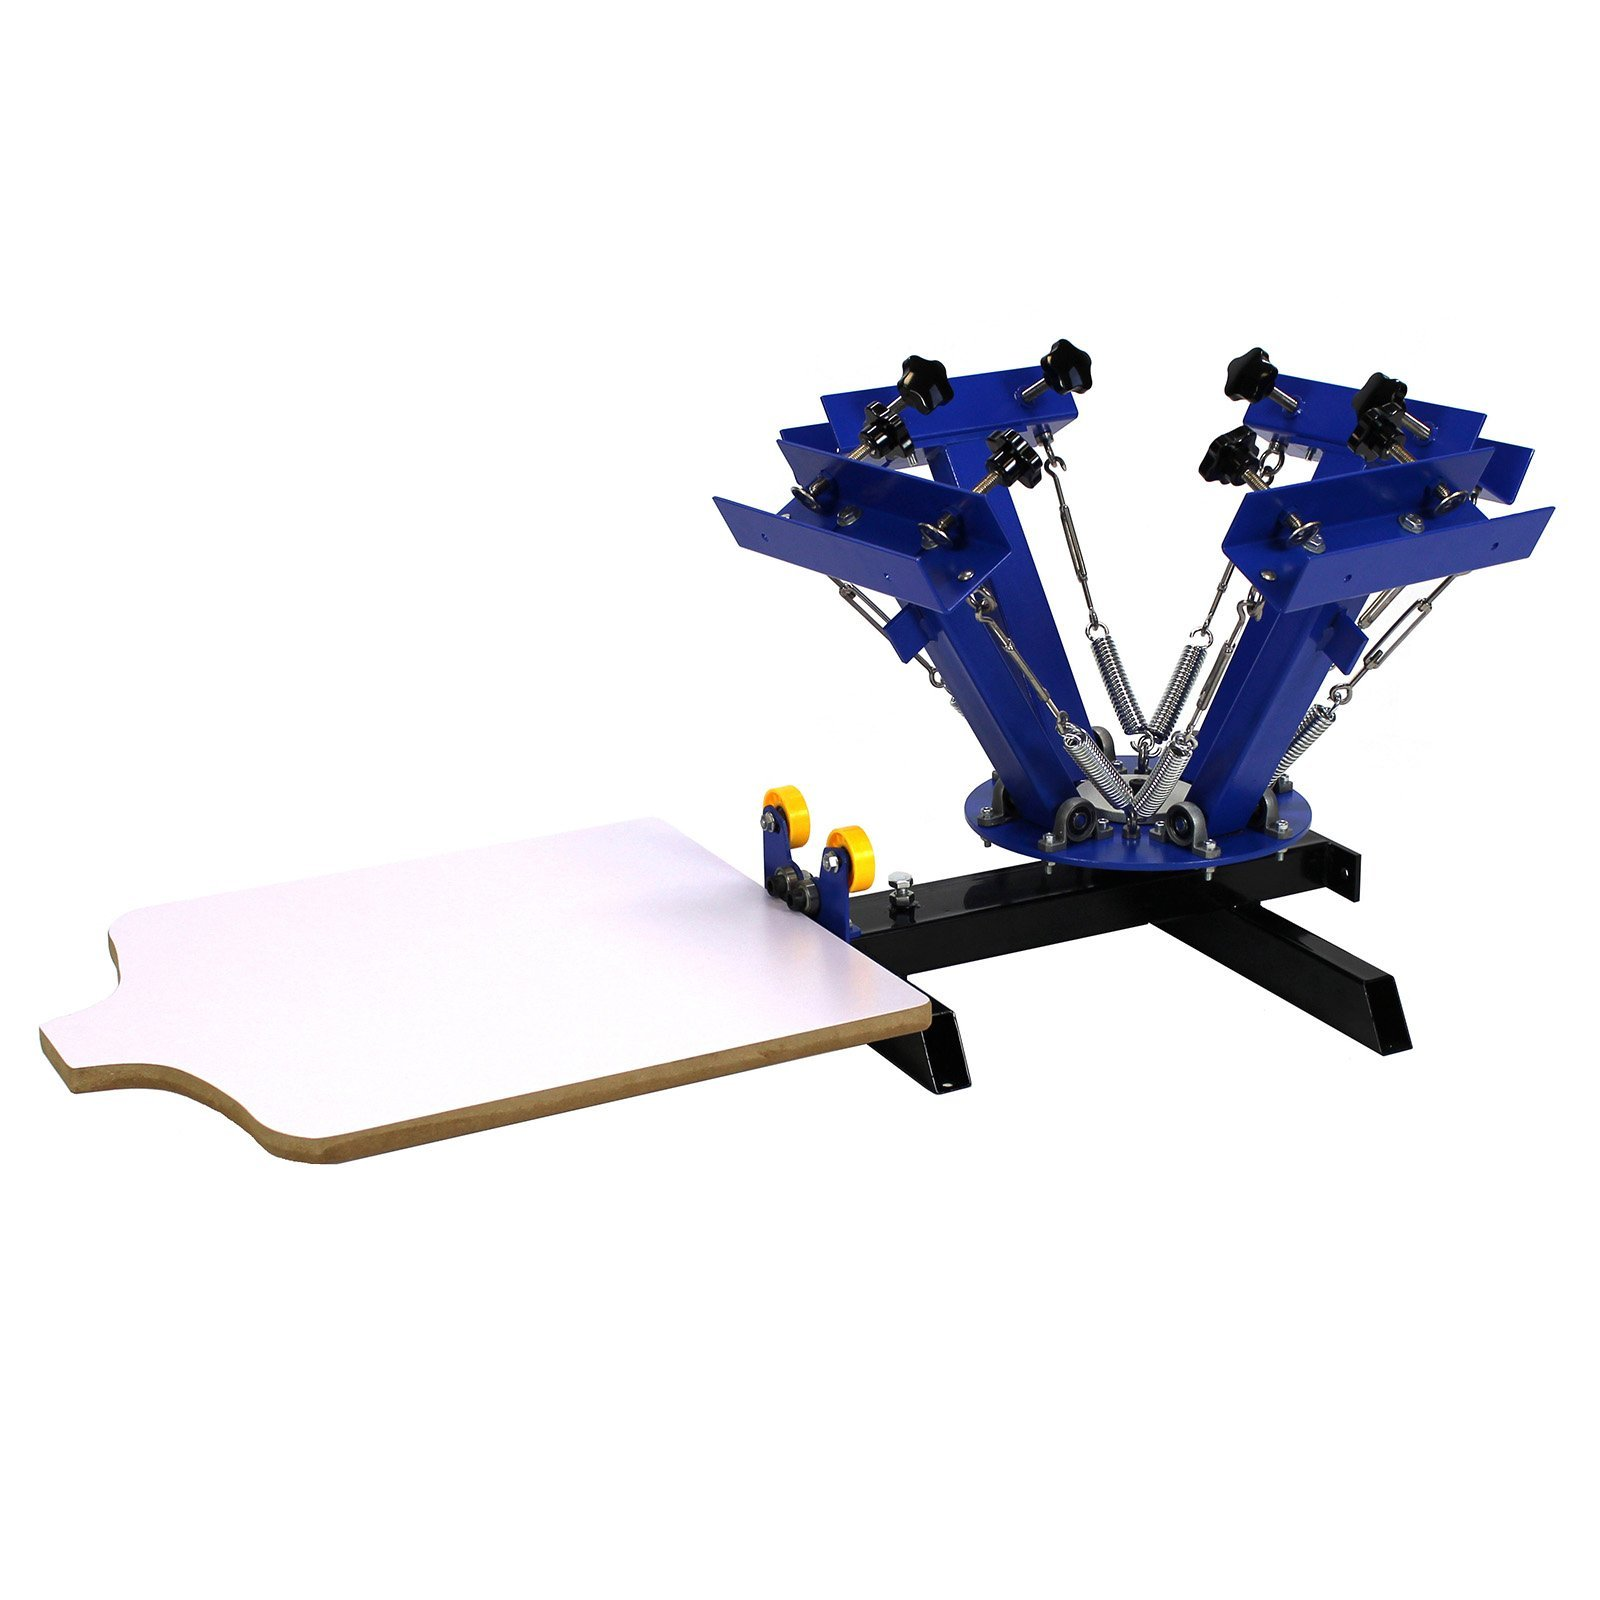 Commercial Bargains NS401 4 Color 1 Station Silk Screen Commercial Printing Press Machine, Blue